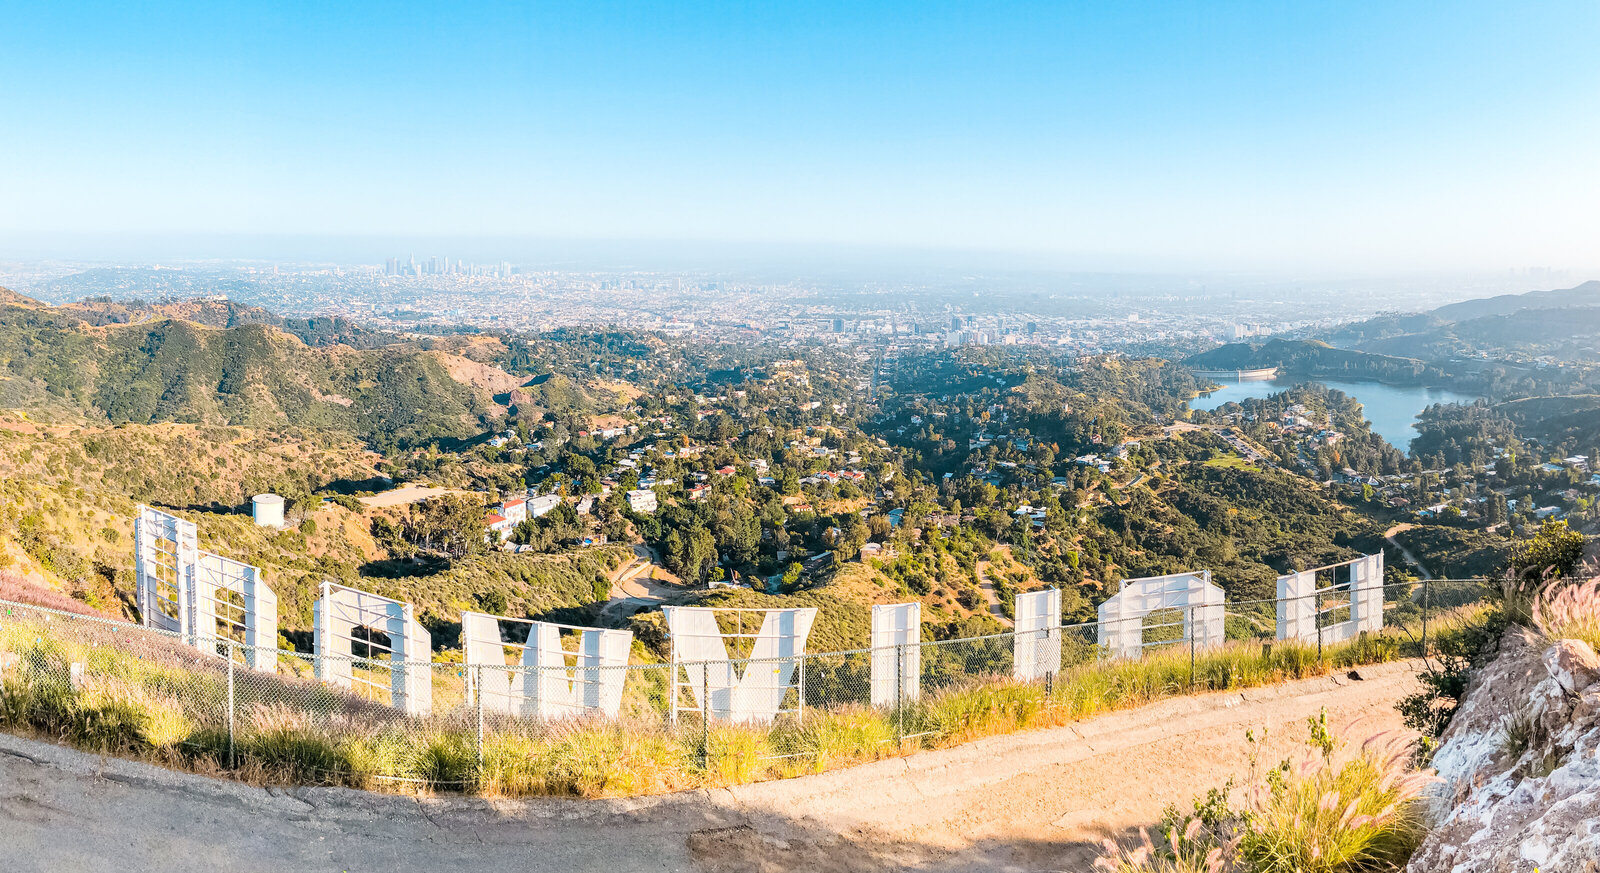 025-KBP-Mount-Lee-Hollywood-Sign